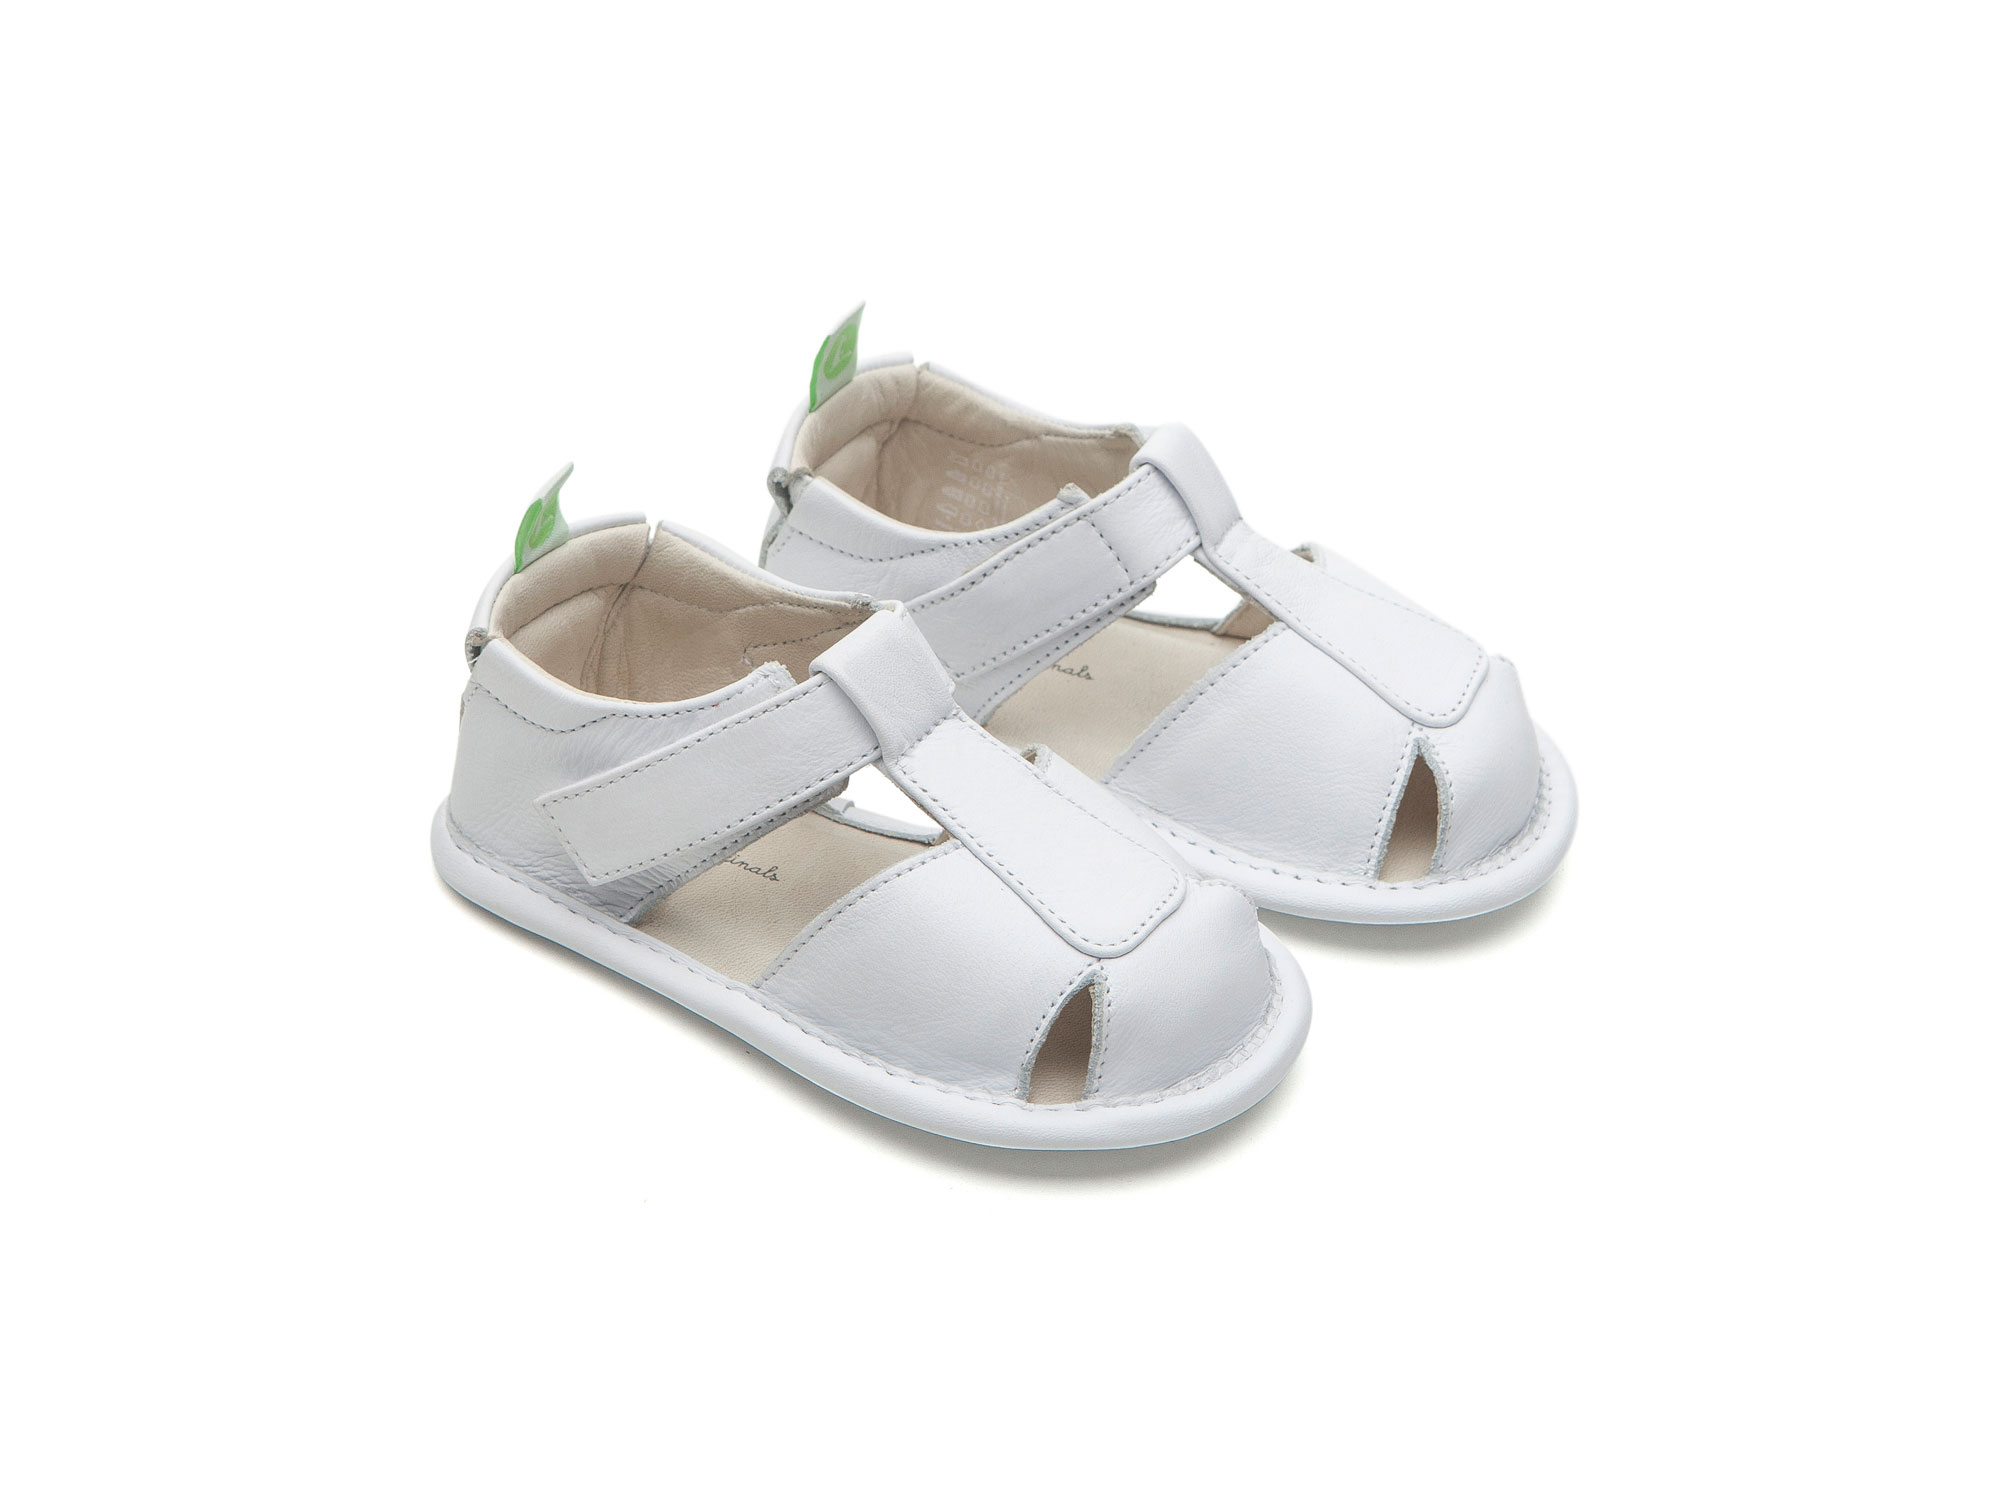 Sandal Parky White  Baby for ages 0 to 2 years - 0